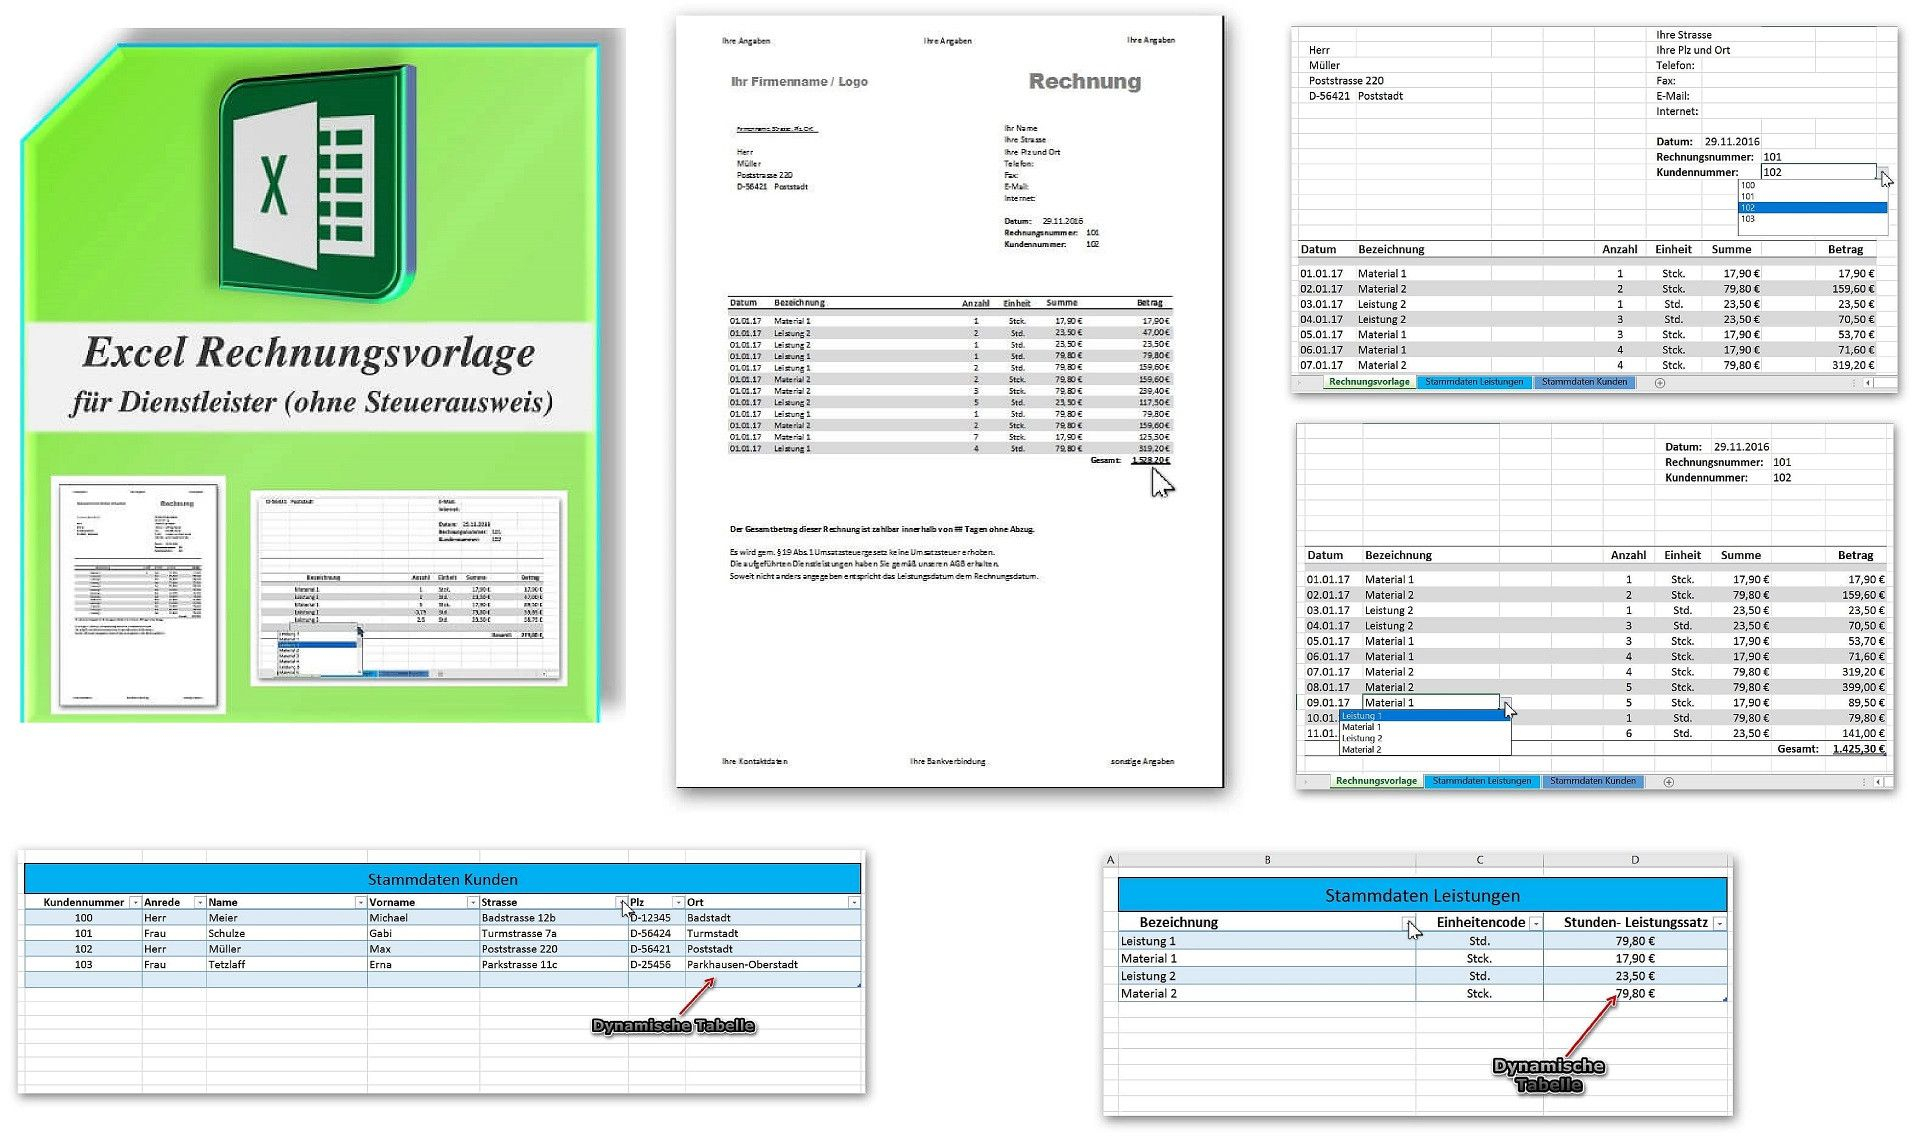 Excel Spreadsheet Problem Solving With 8D Problem Solving Template Excel  Glendale Community Document Template